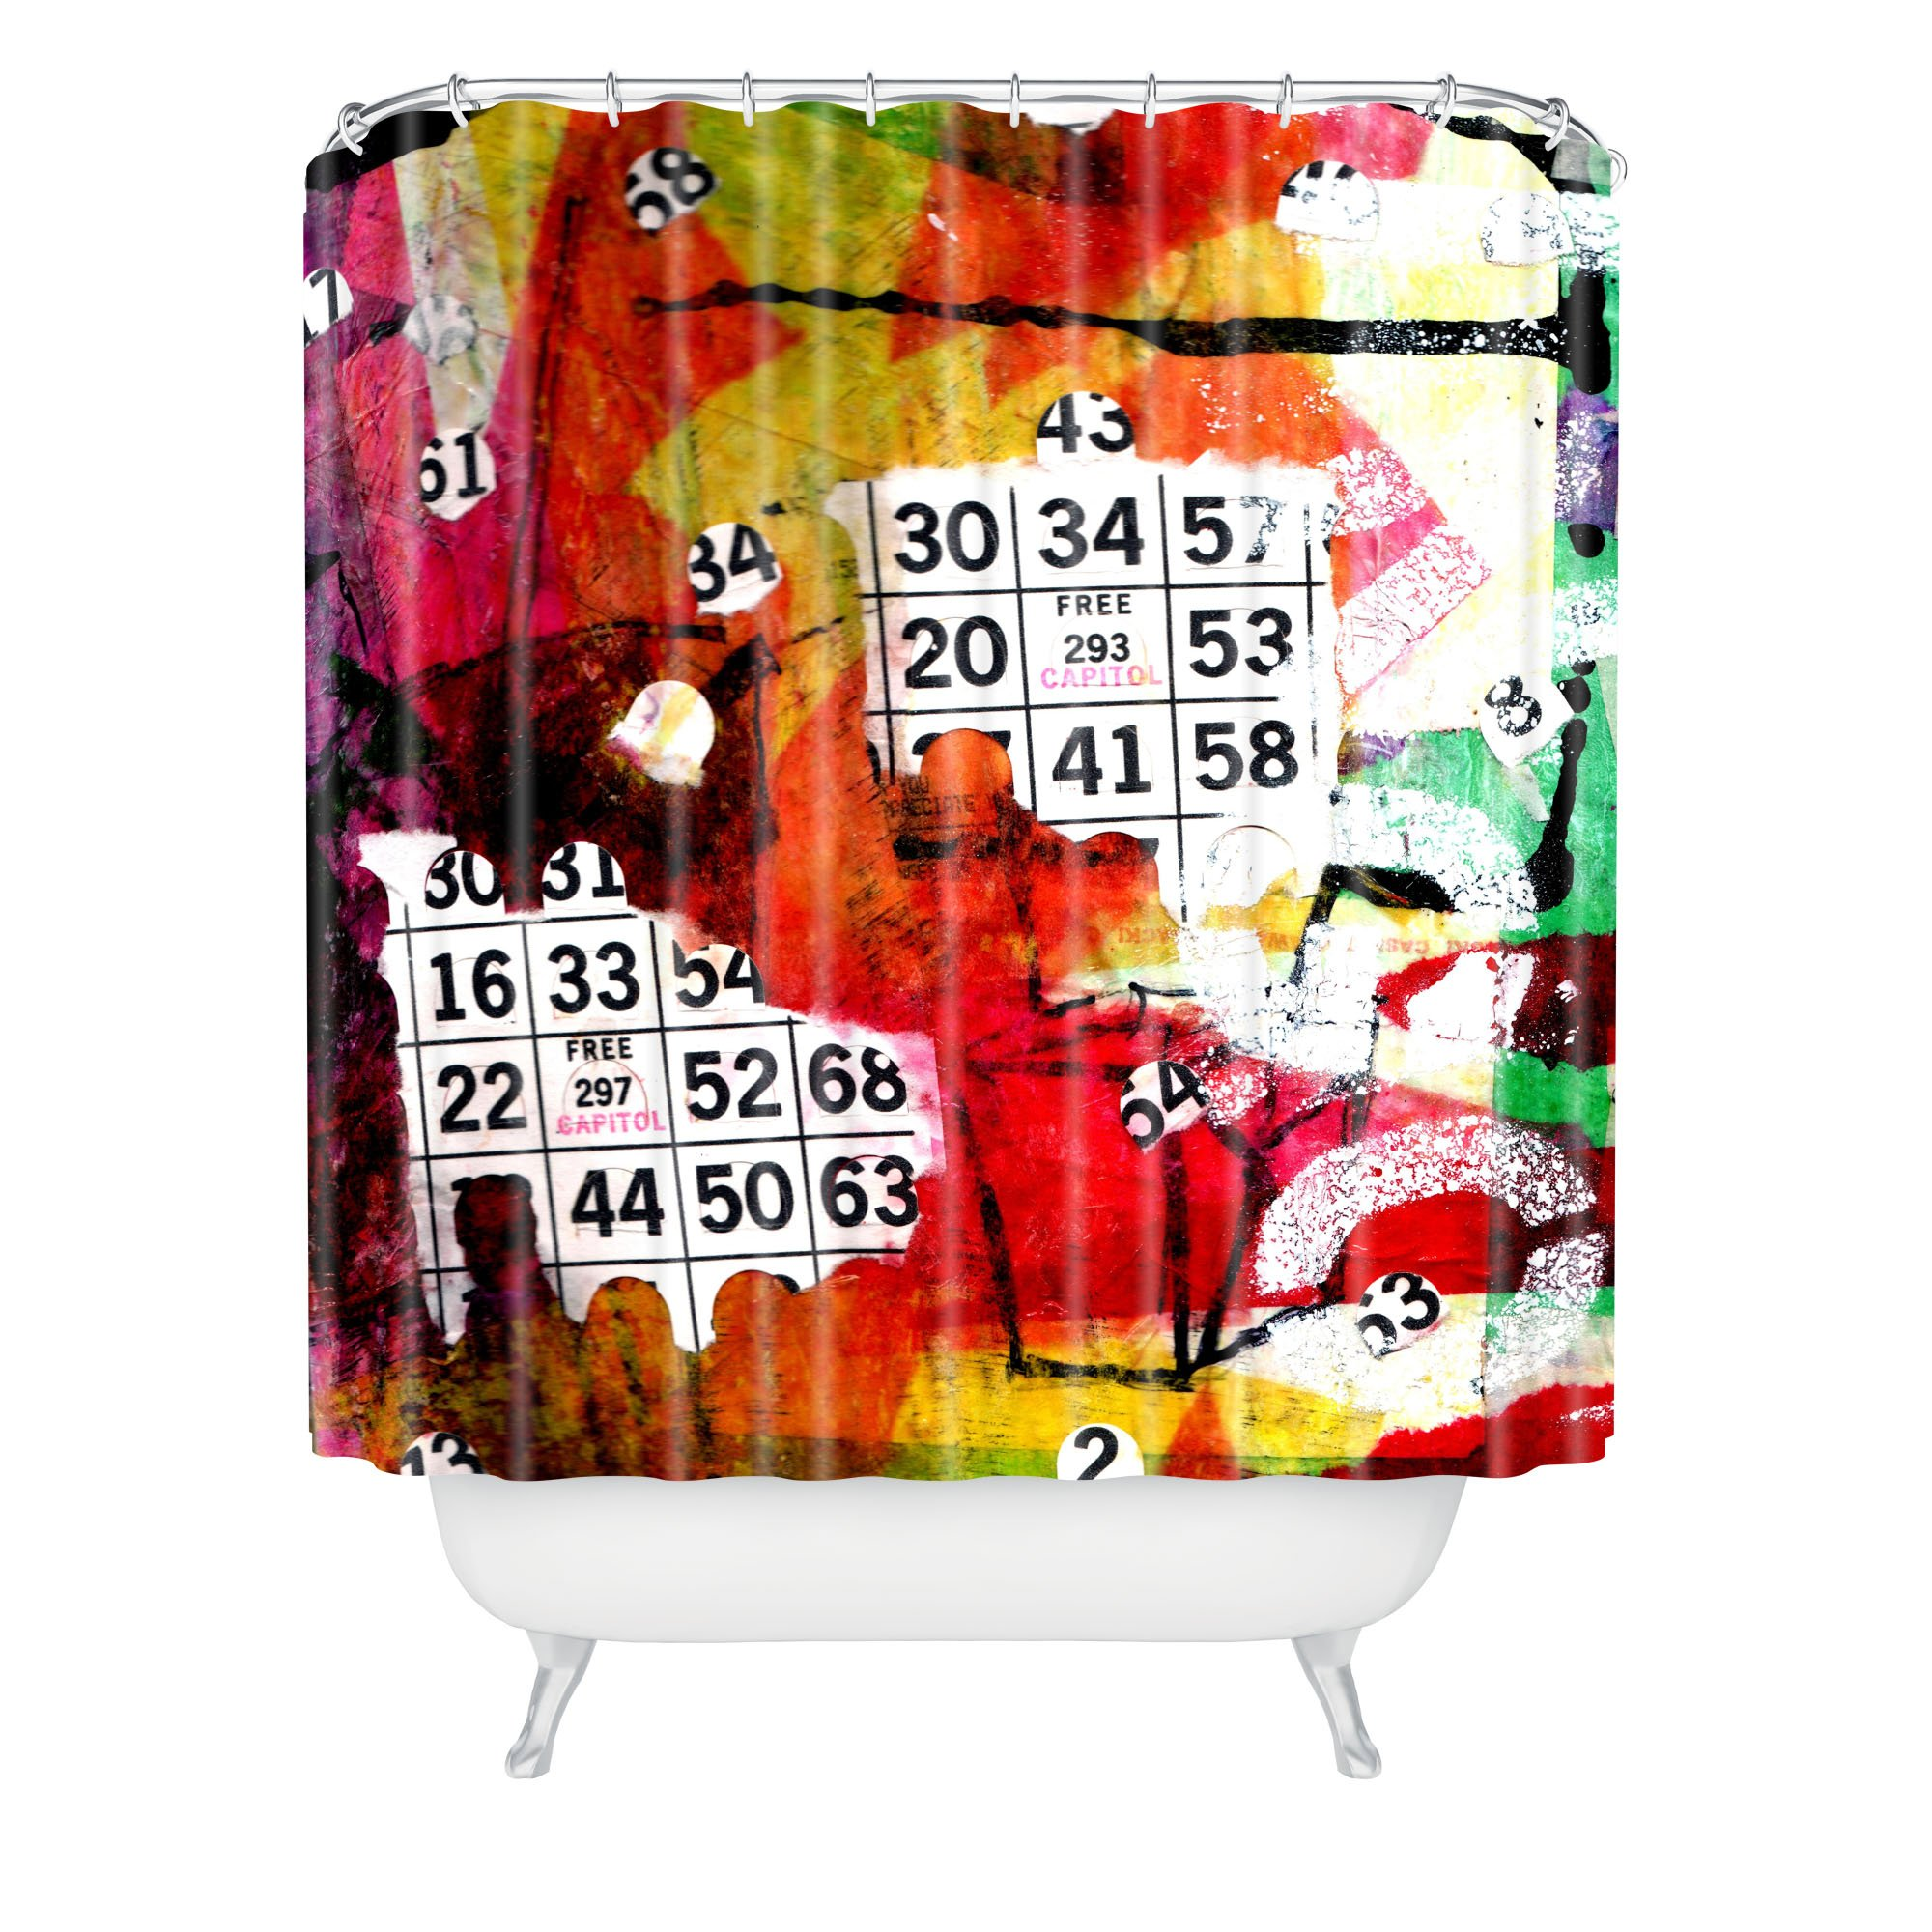 Deny Designs Sophia Buddenhagen Bright Bingo 2 Shower Curtain, 69'' x 72''